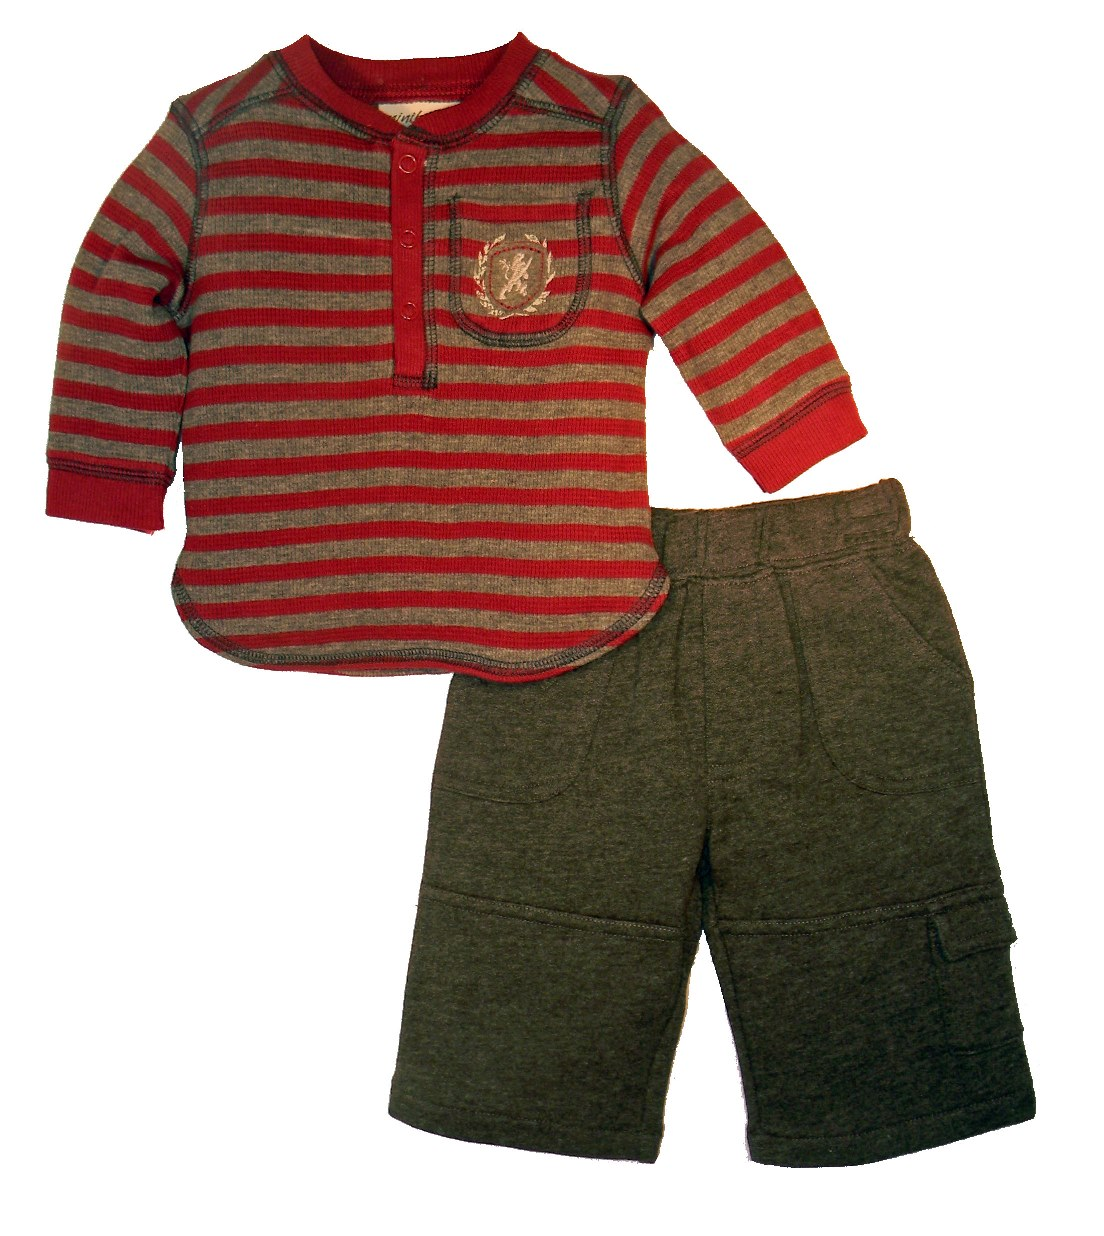 Minibasix Boys' Striped Shirt & Pant Set (Size: 3 Months)